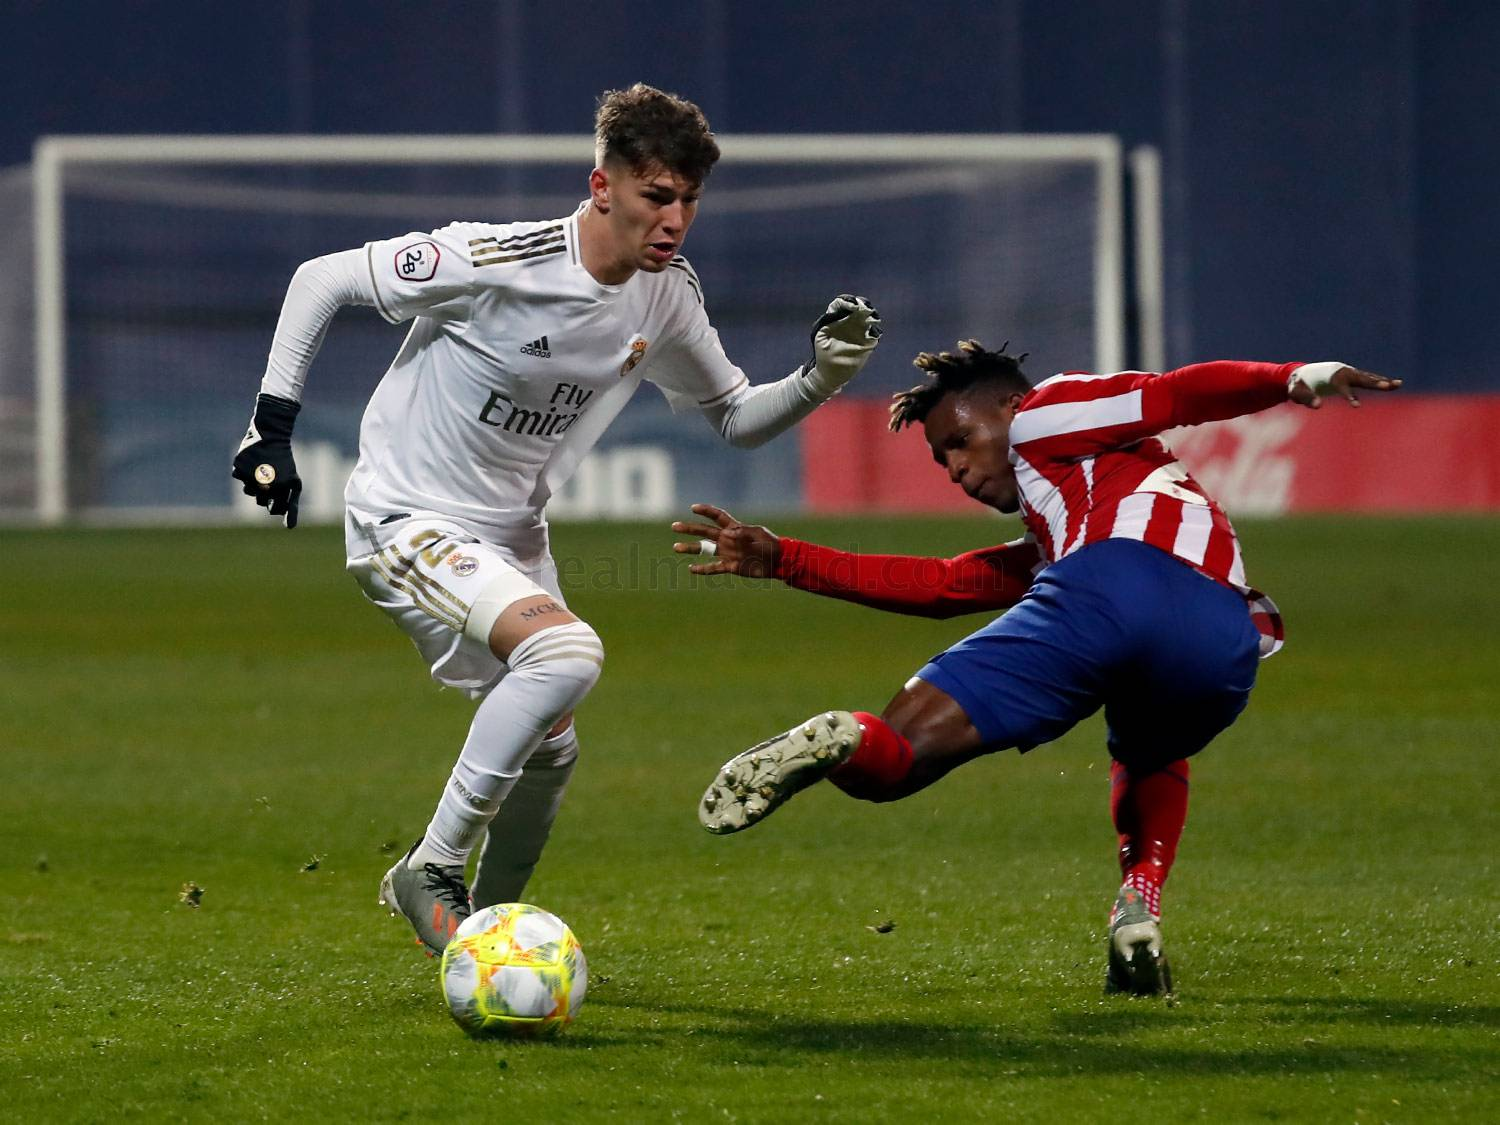 Real Madrid - Atlético de Madrid B - Real Madrid Castilla  - 30-11-2019